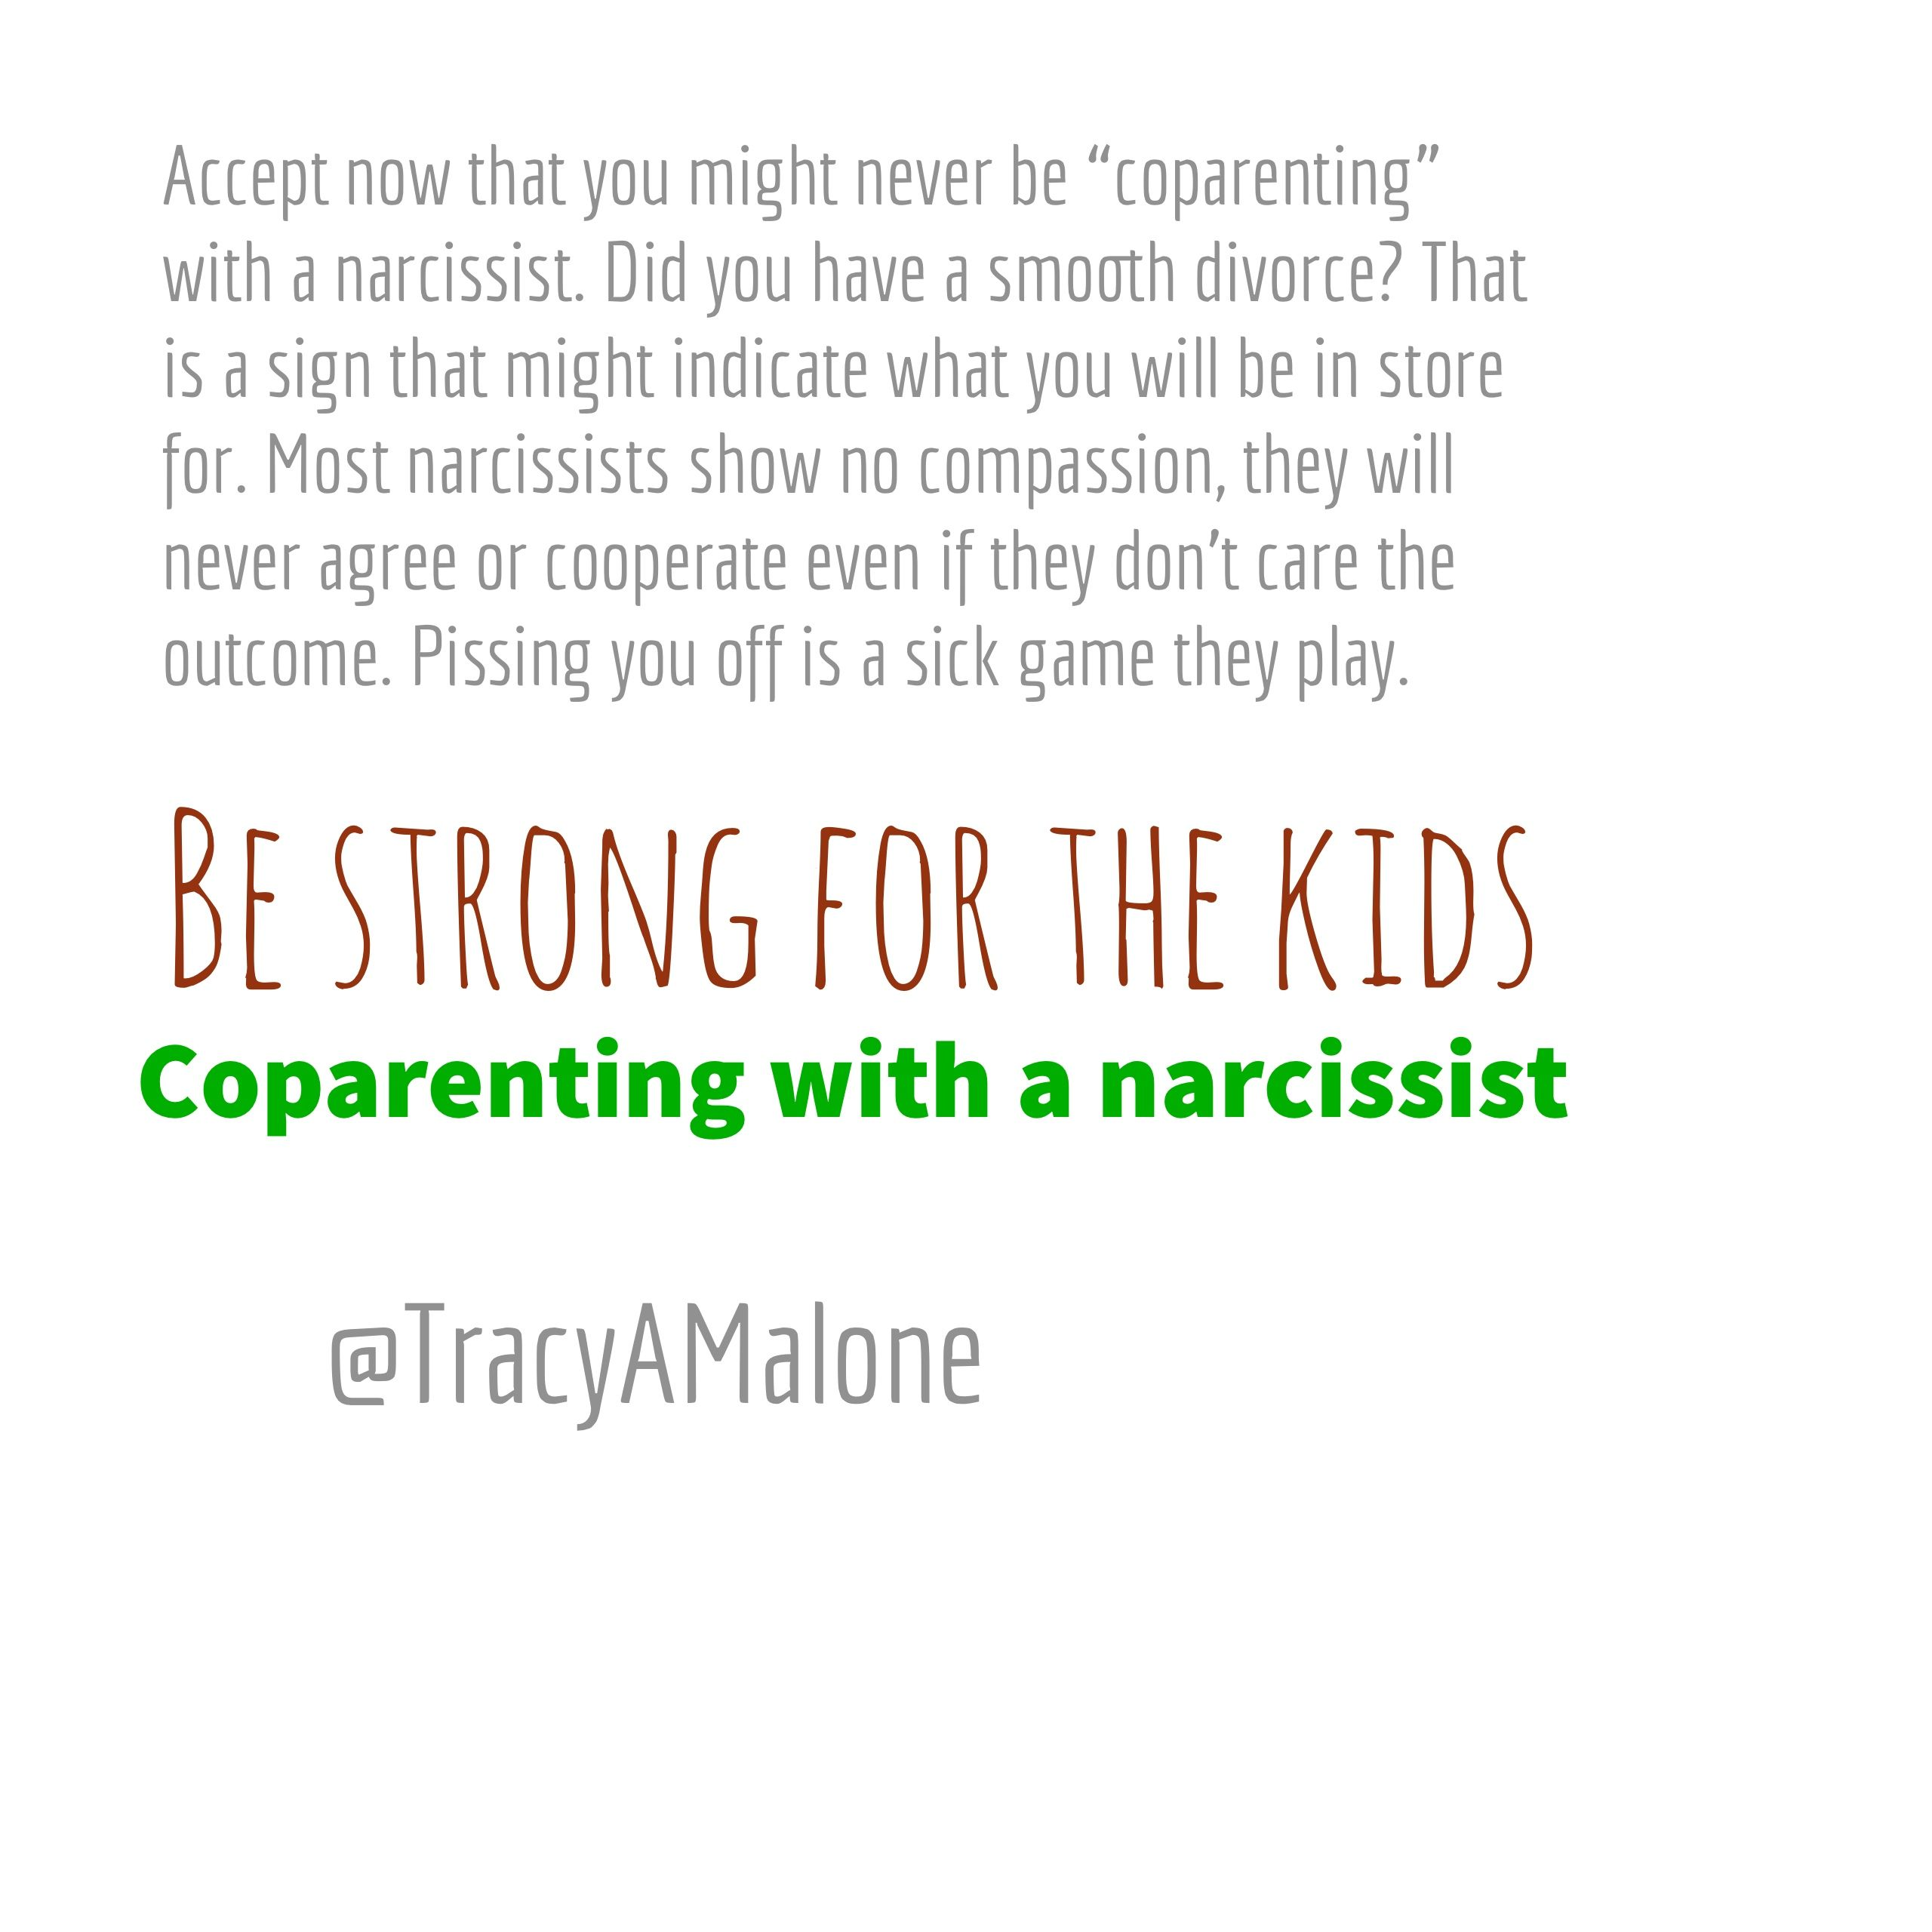 Be Strong for the Kids - Co-parenting with a narcissist